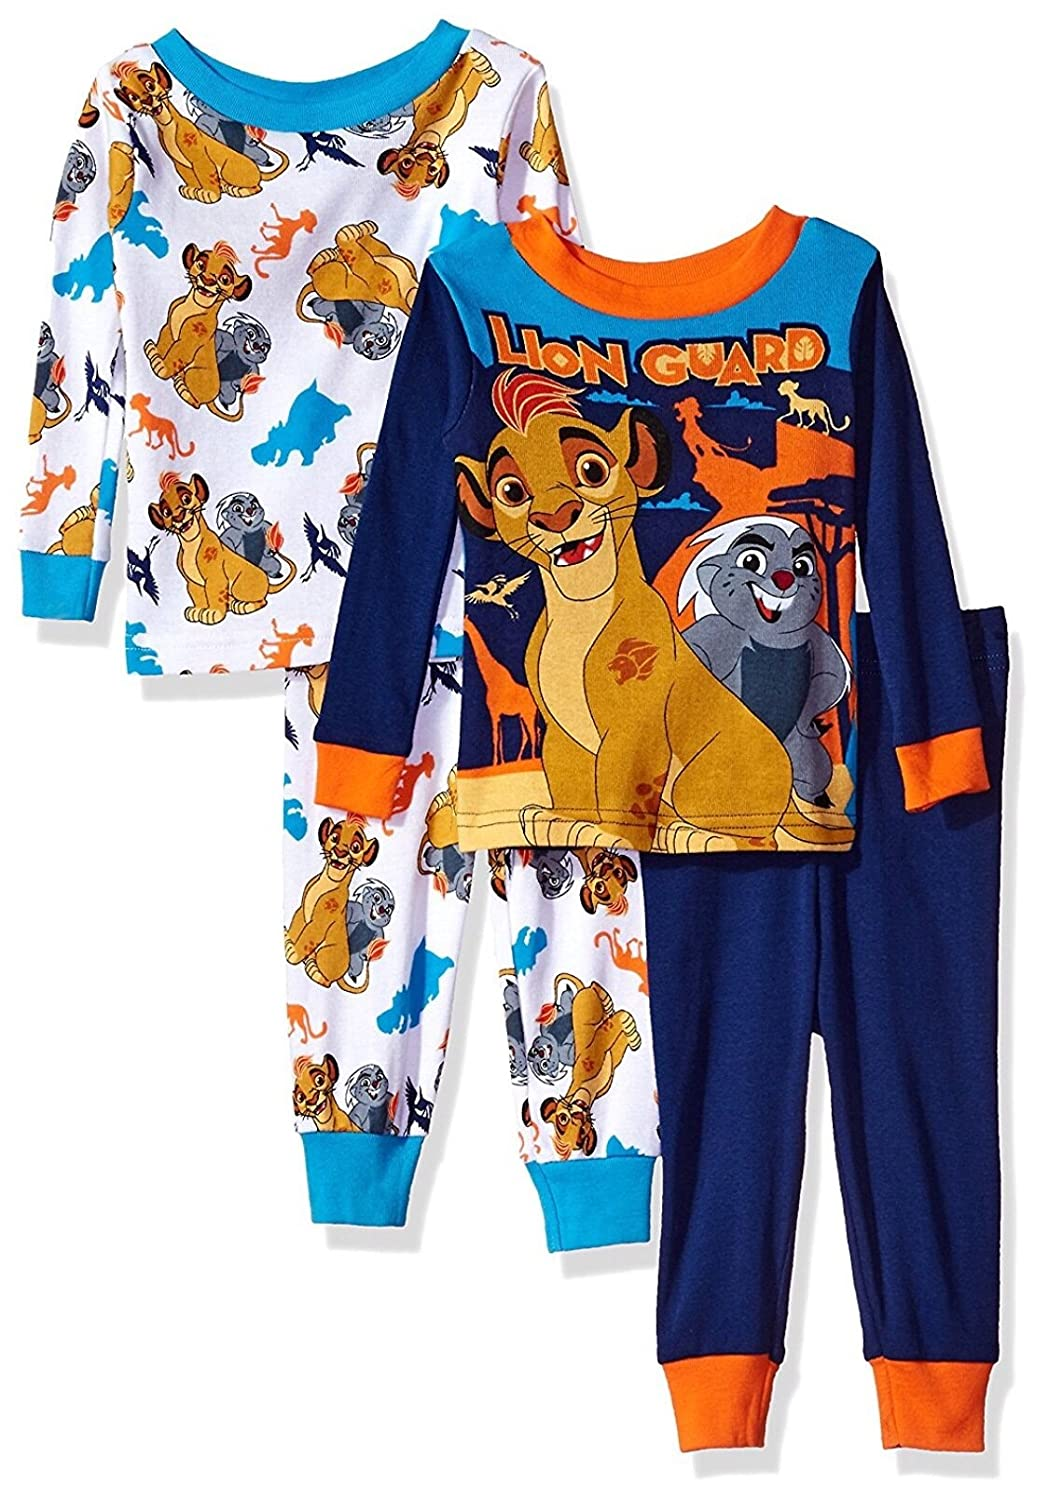 Disney Junior The Lion Guard 4 Piece Cotton Toddler Pajamas for boys (3T) LG018ELL3T